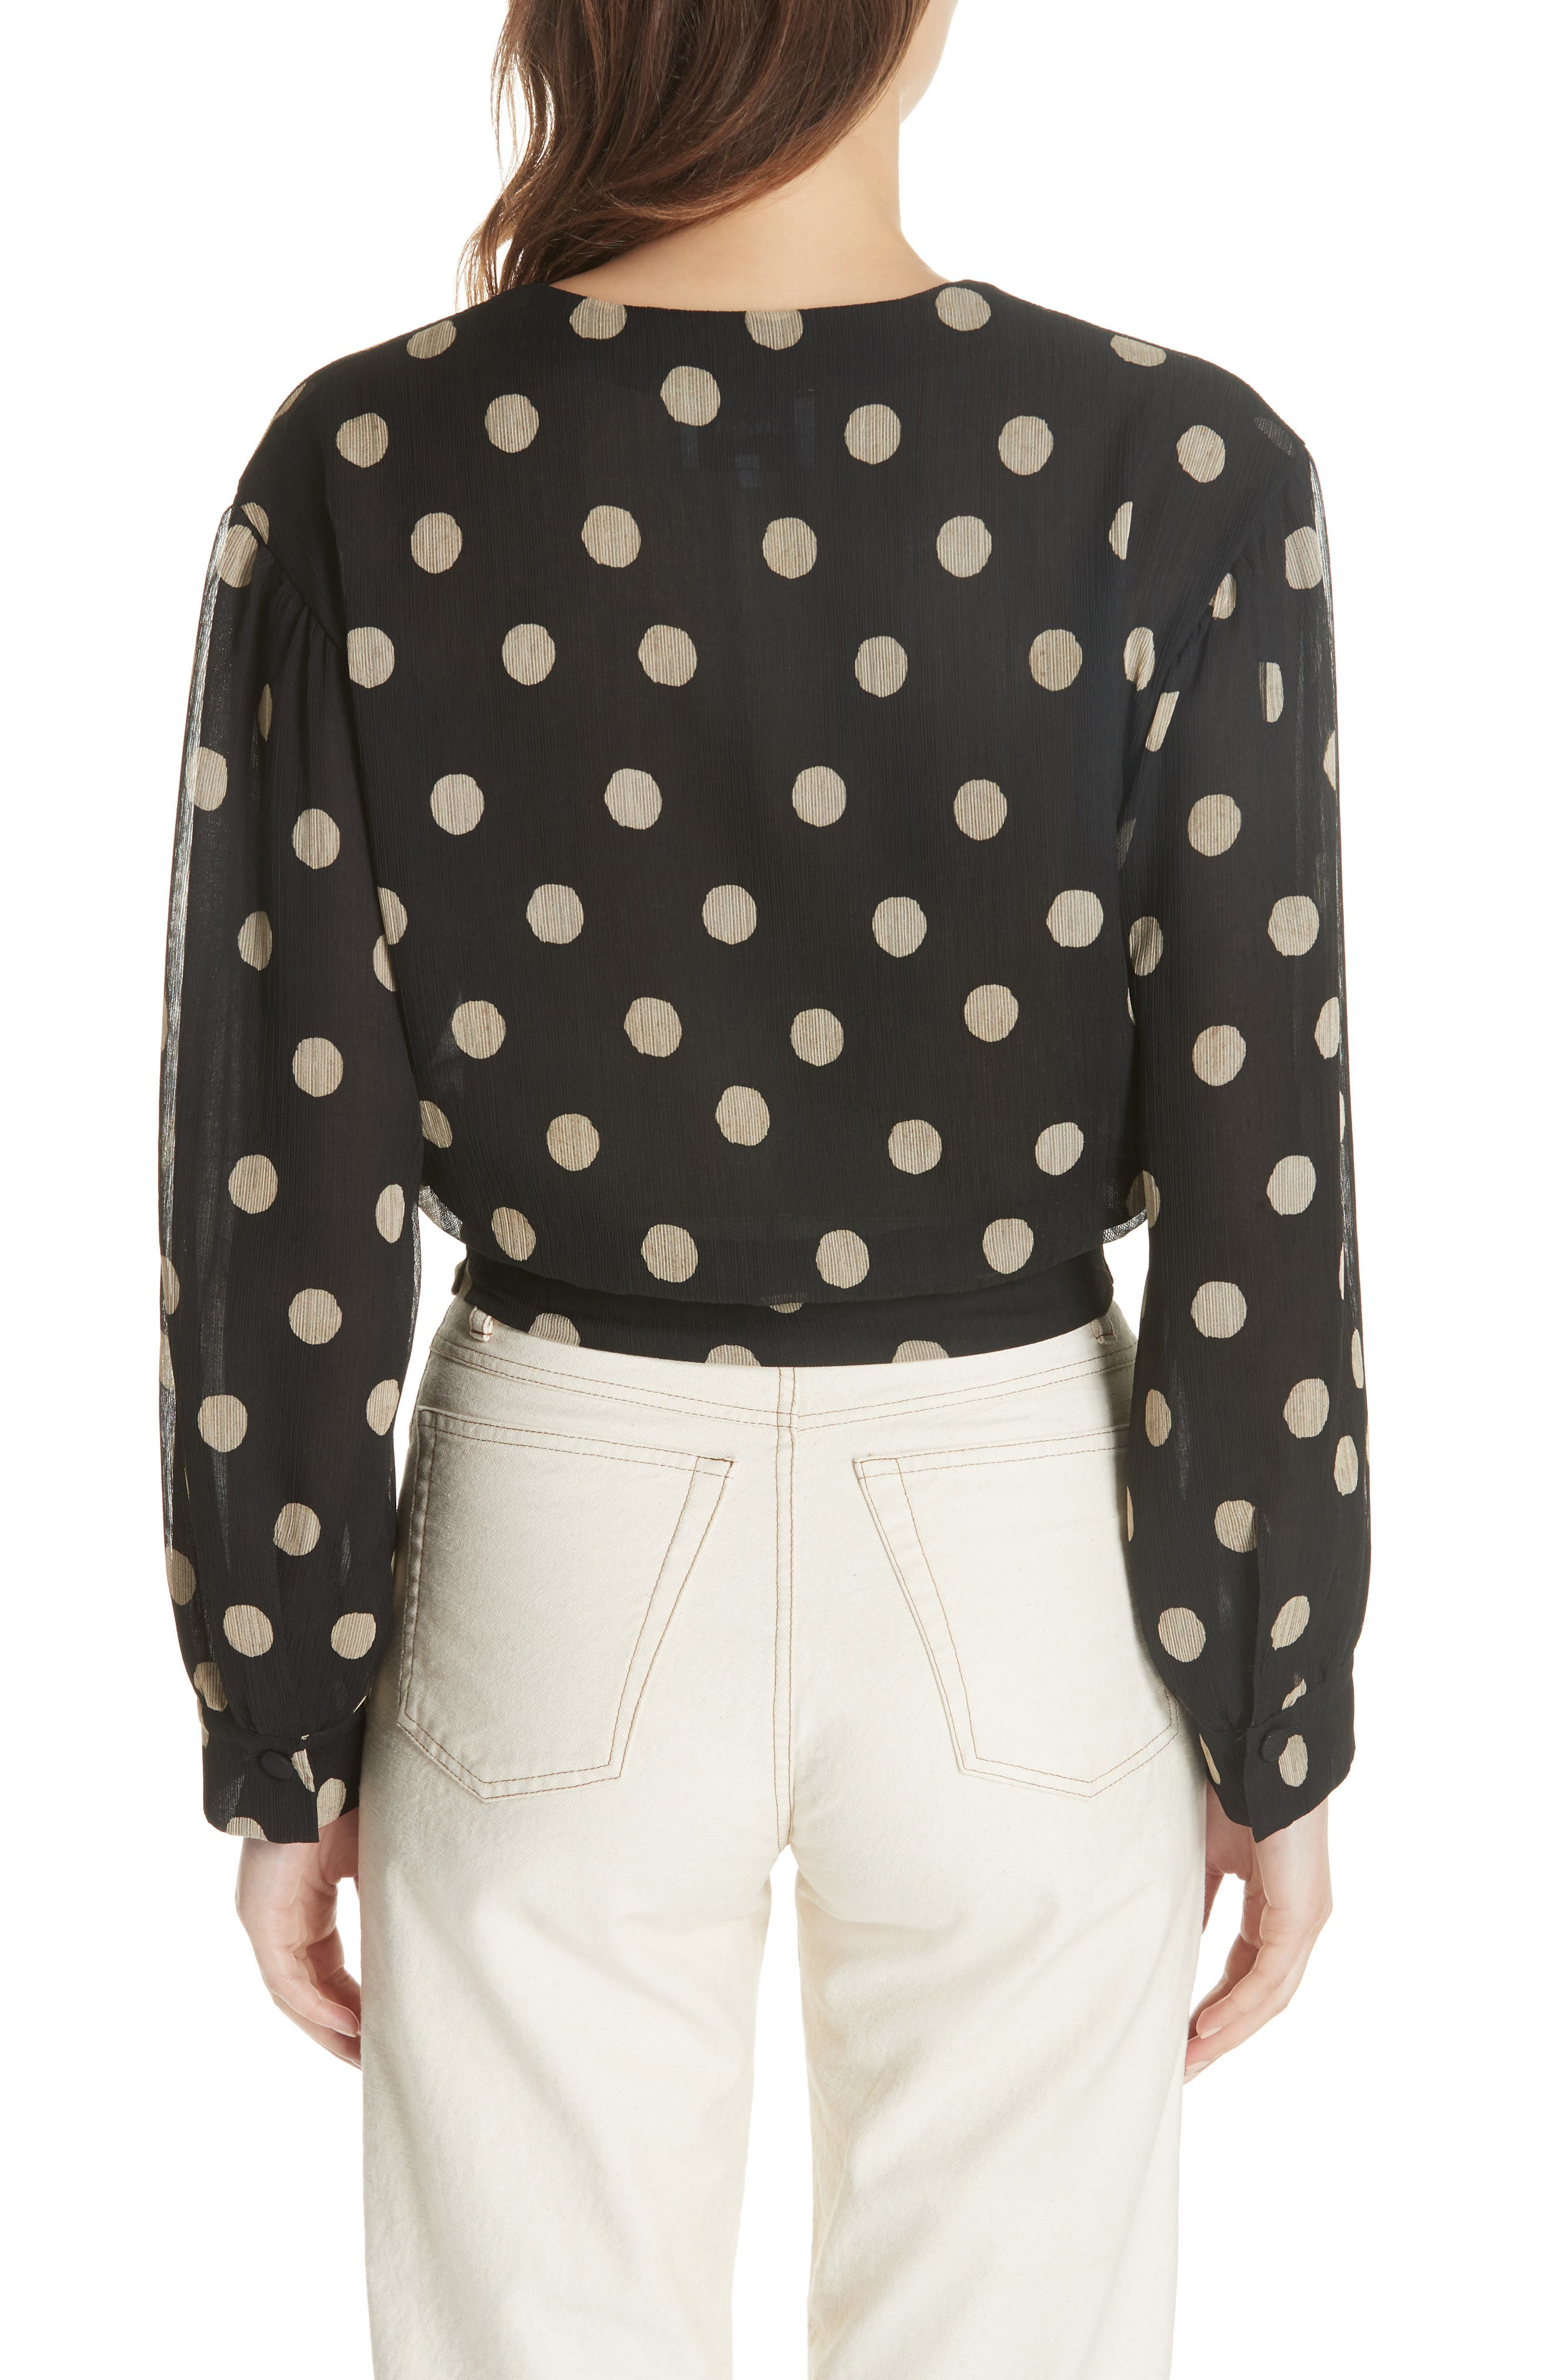 Amulet Polka Dot Tech Chiffon Blouse,                             Alternate thumbnail 2, color,                             Polka Dot